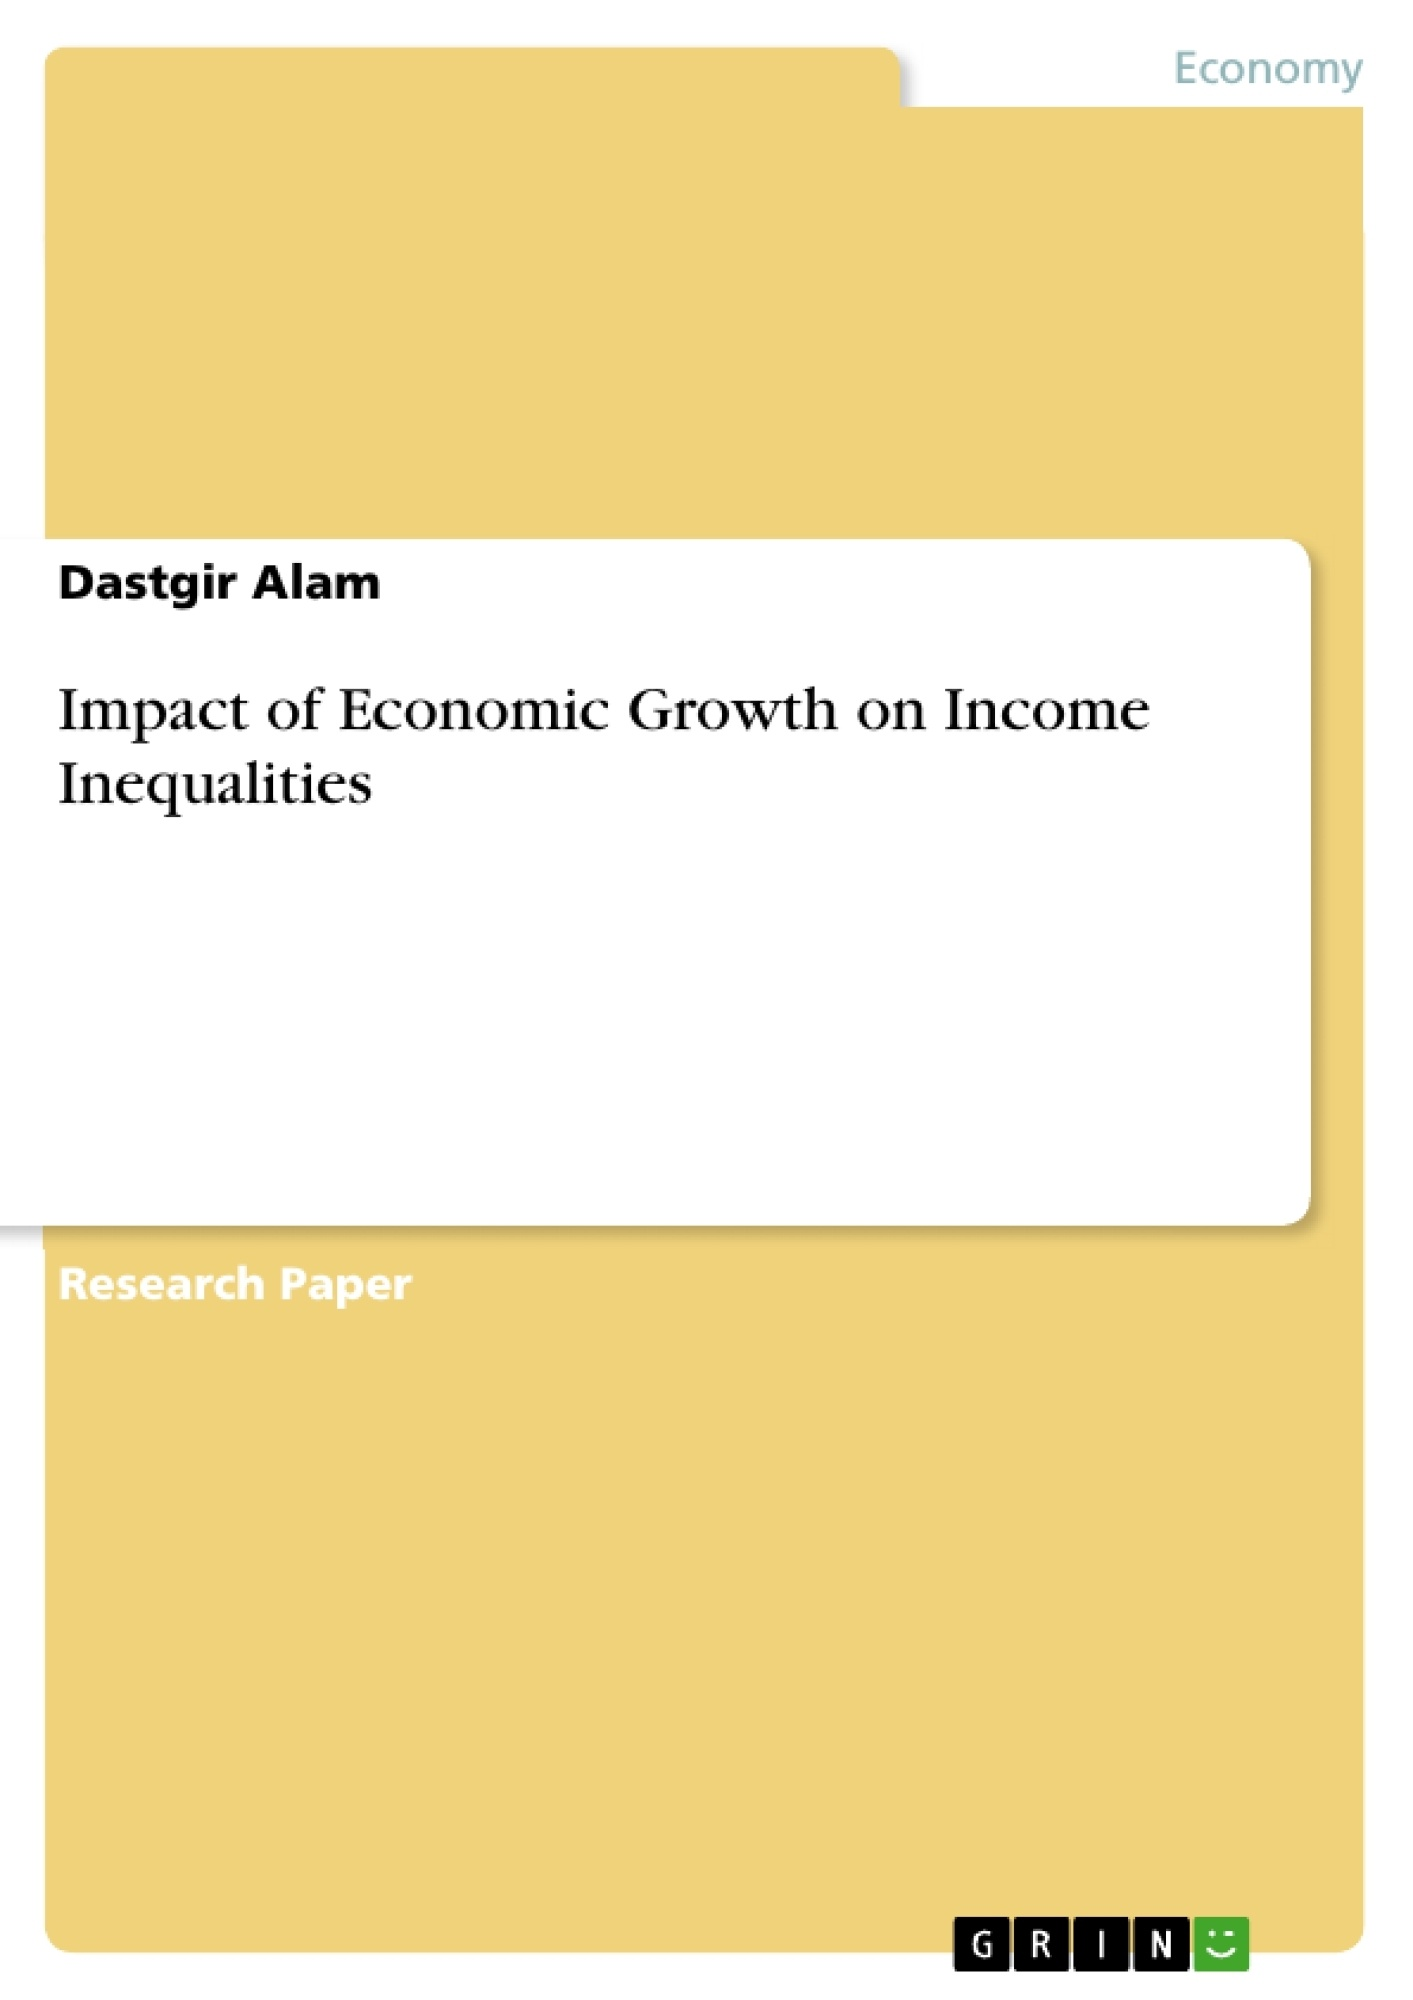 Title: Impact of Economic Growth on Income Inequalities